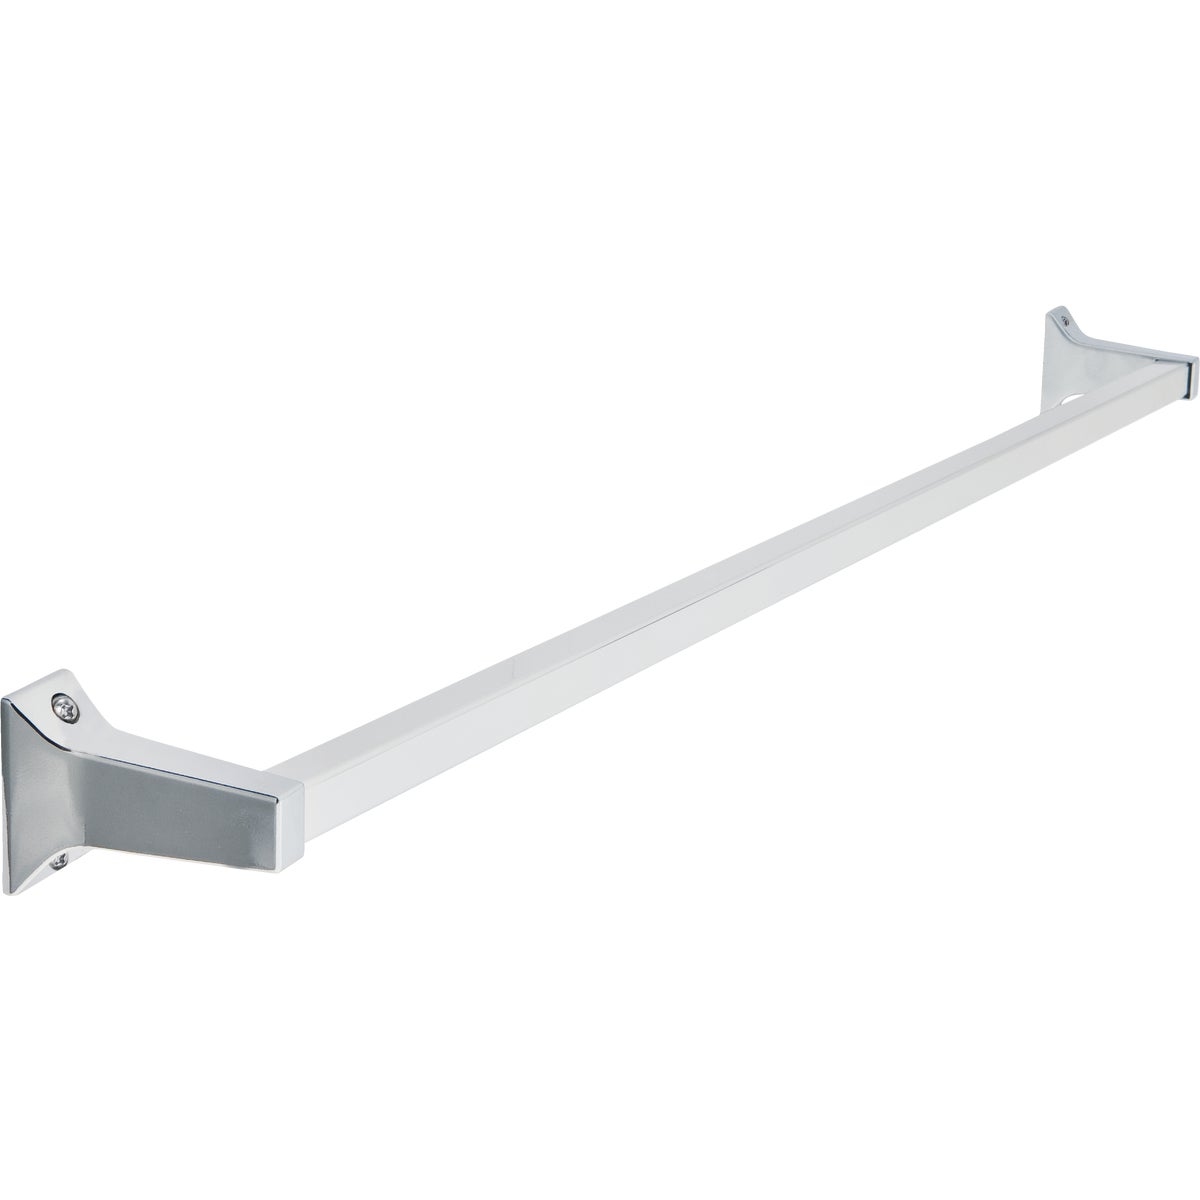 "30"" CHROME TOWEL BAR - 408874 by Do it Best"